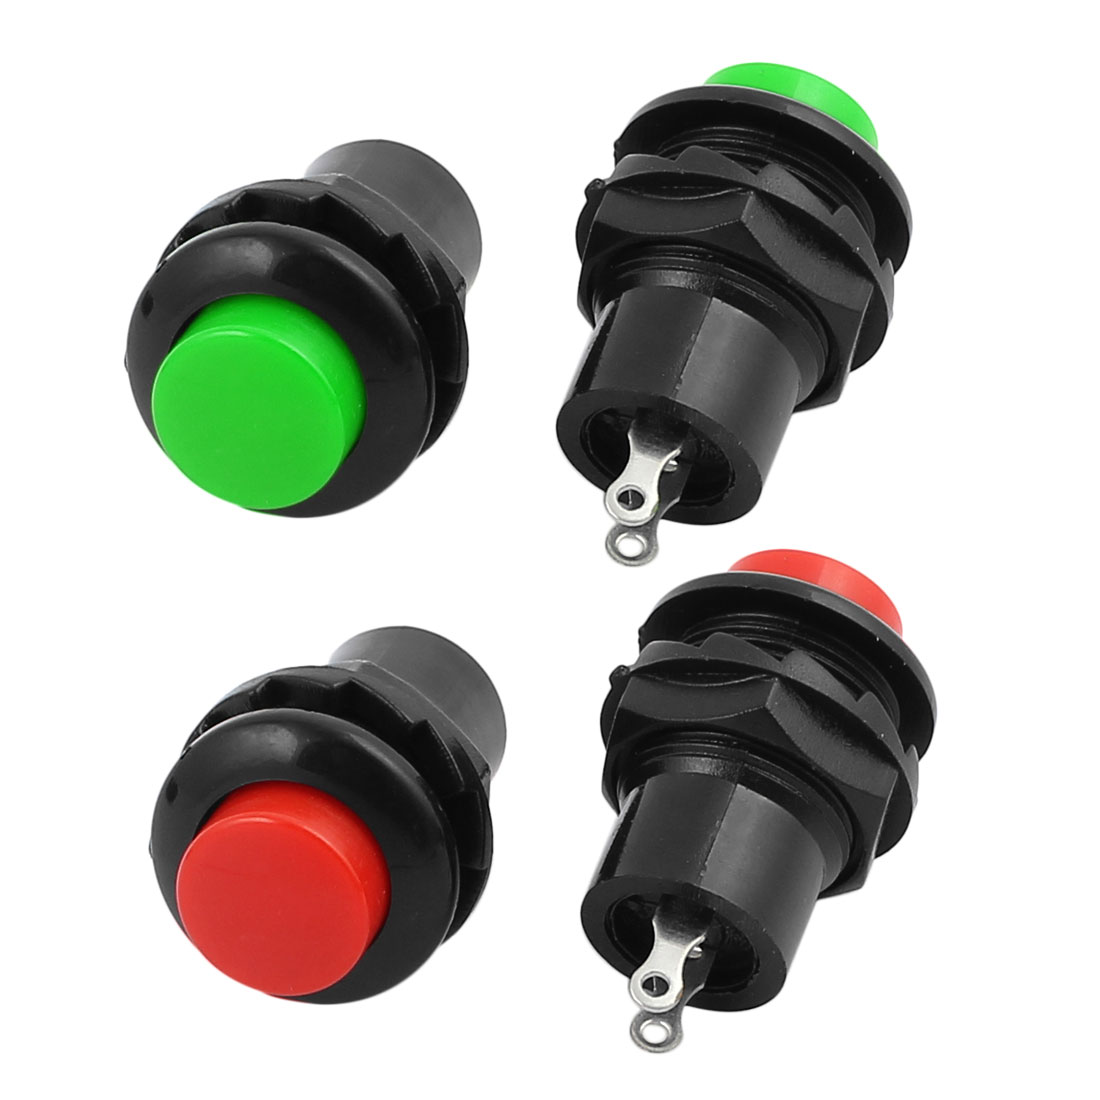 2 Sets AC250V 3A 2 Terminals SPST On/Off Momentary Push Button Switch Red Green